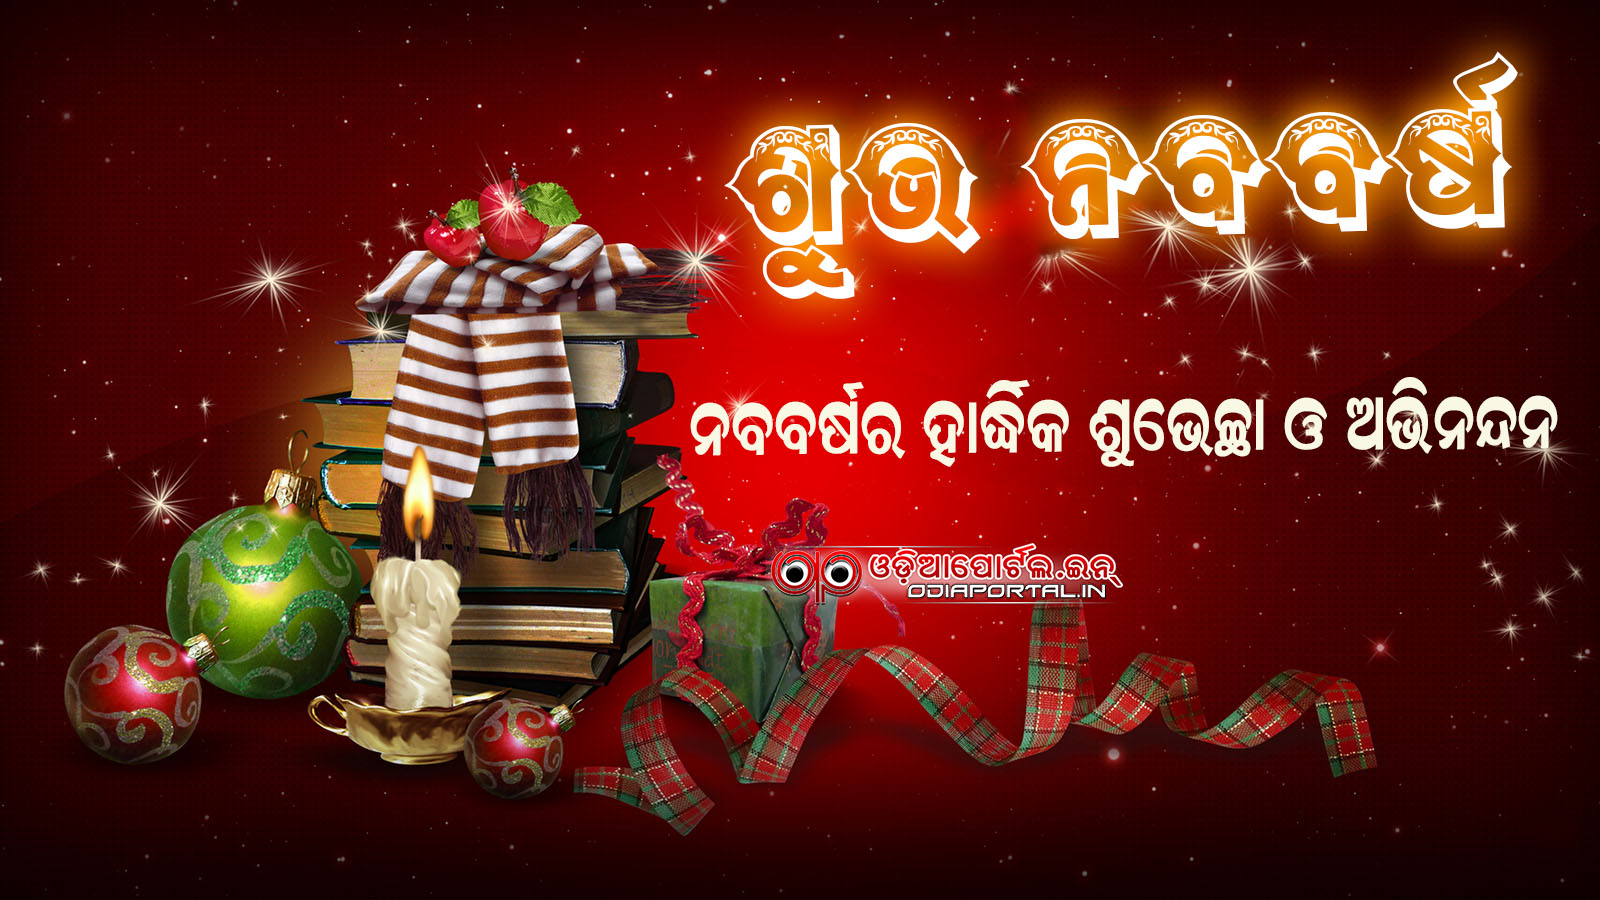 Download Happy New Year 2018 Odia Hq Greeting Cards And Scraps For